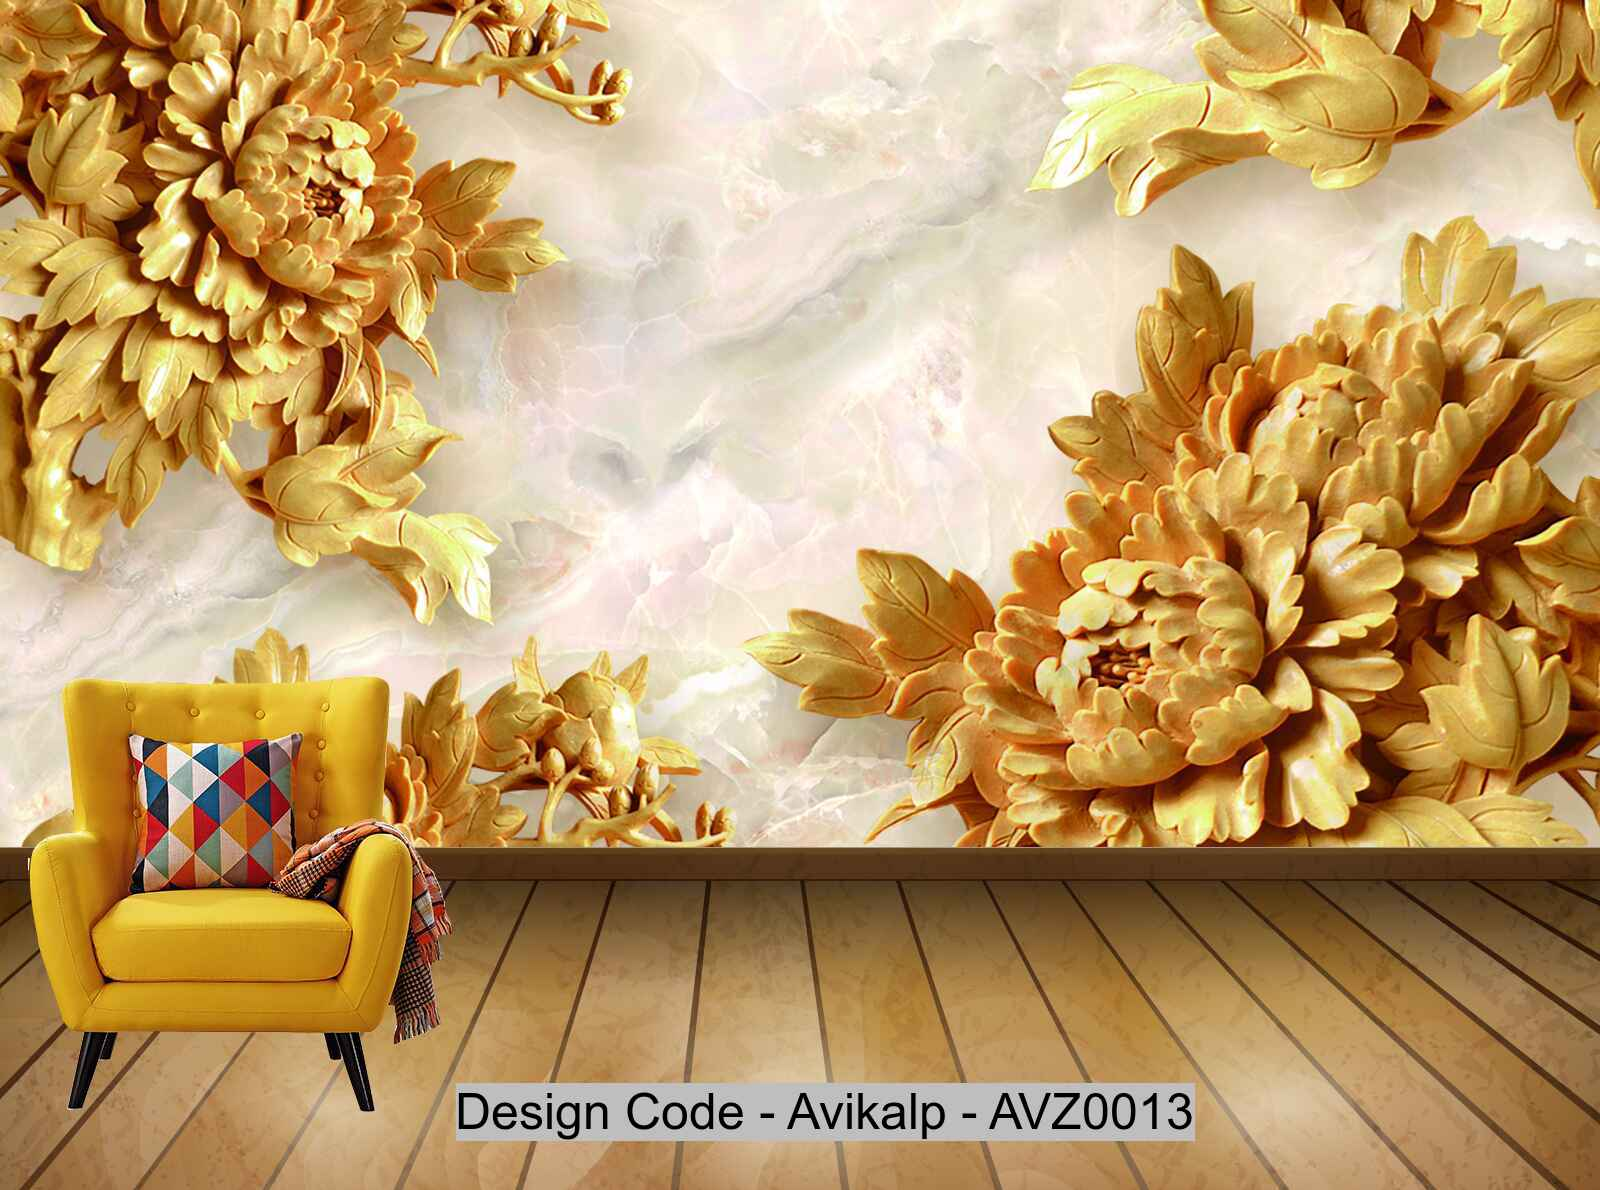 Avikalp Exclusive Avz0013 Chinese Style 3d Marble Peony Flower Tv